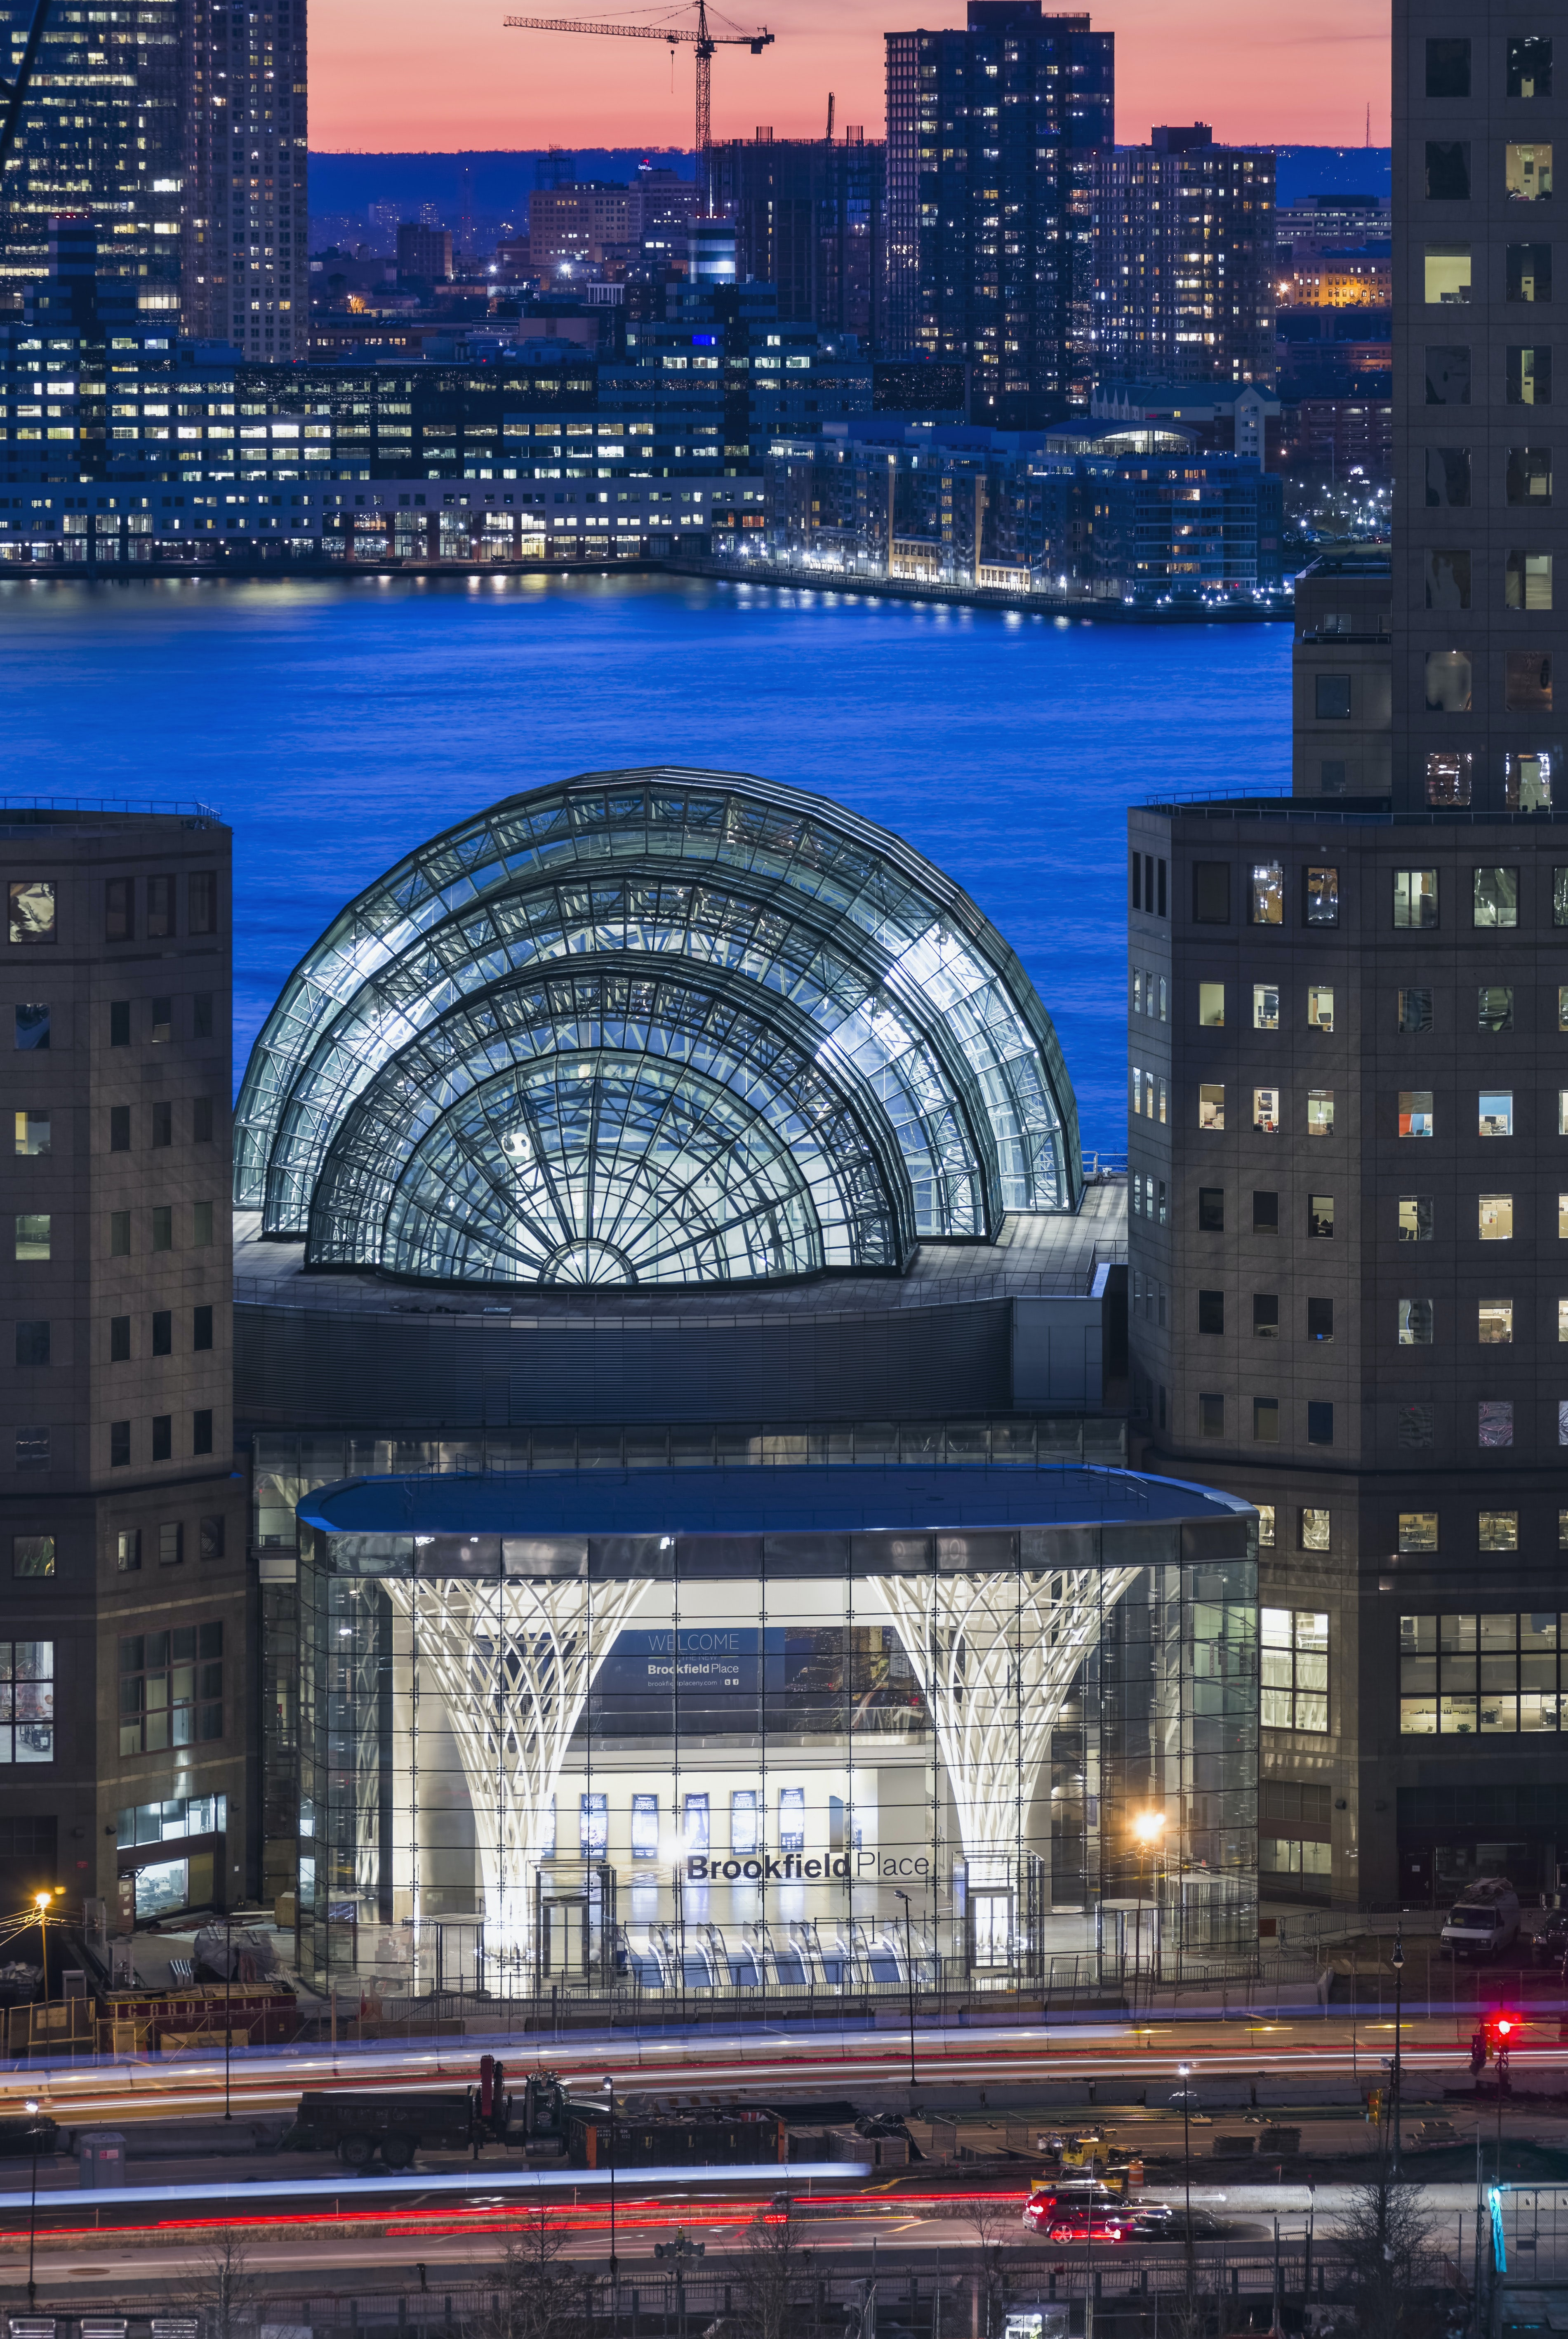 the pavilion at brookfield place on architizer